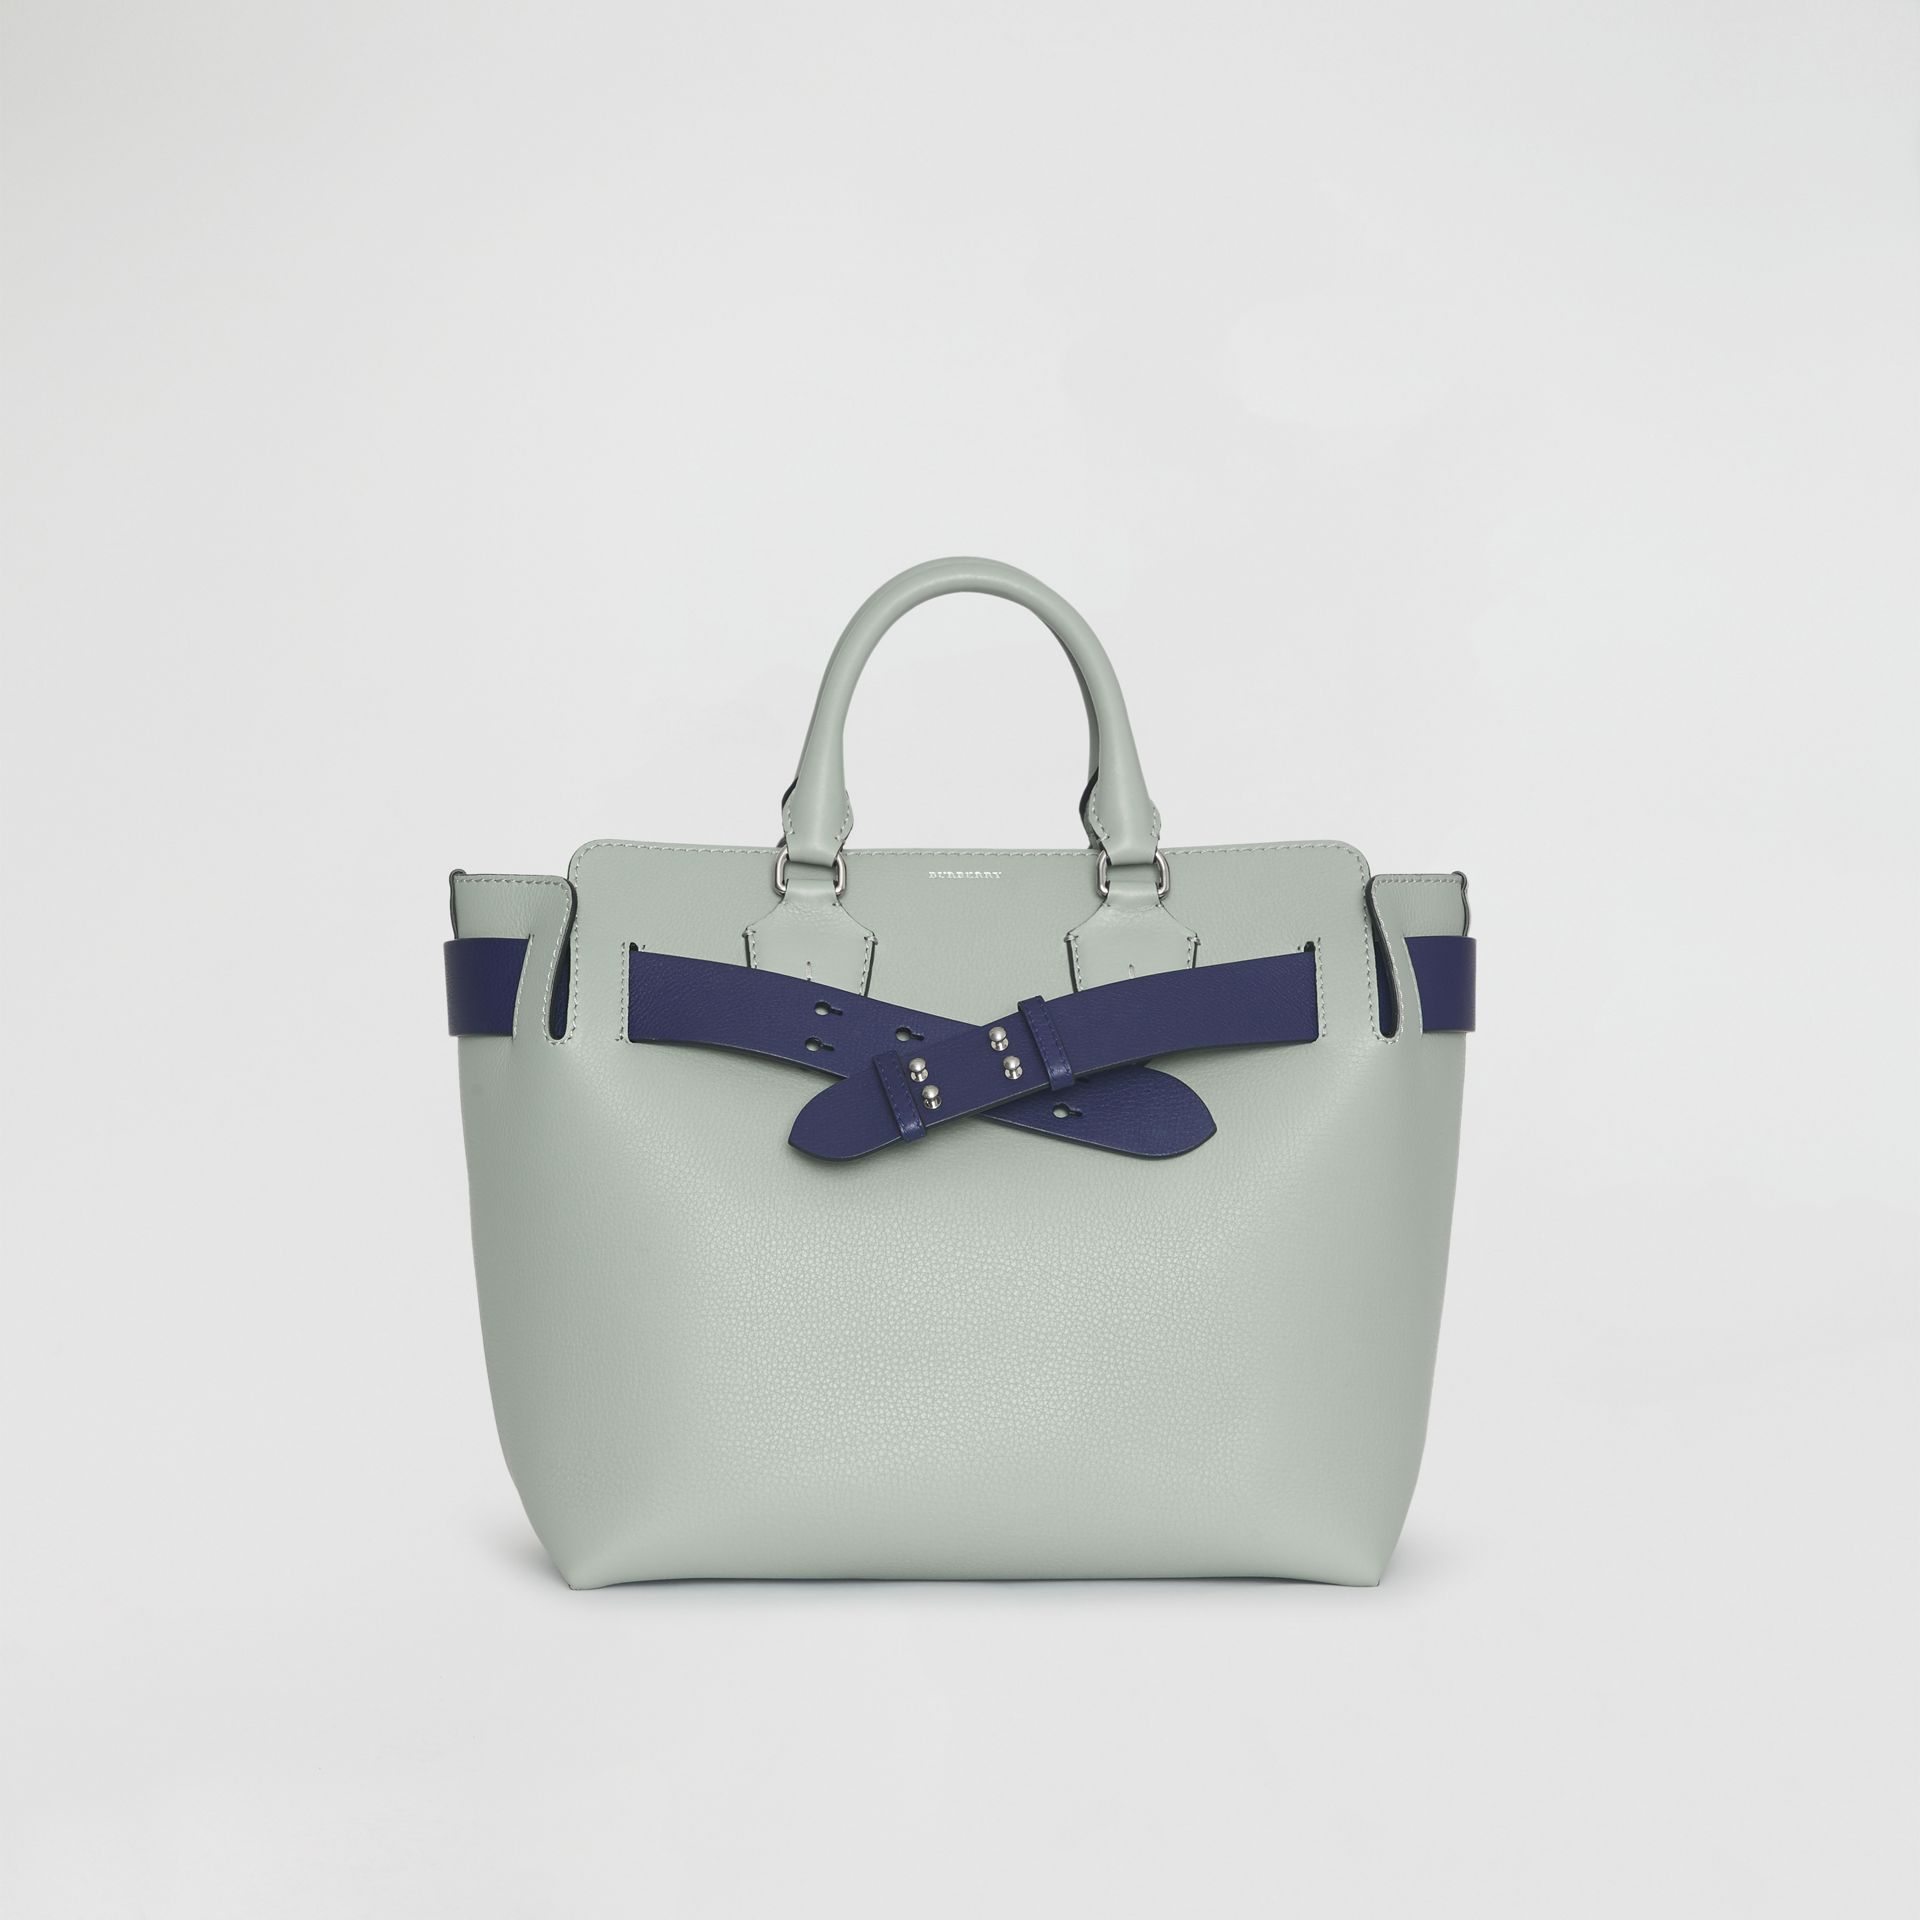 Sac The Belt moyen en cuir (Gris Bleu) - Femme | Burberry Canada - photo de la galerie 0